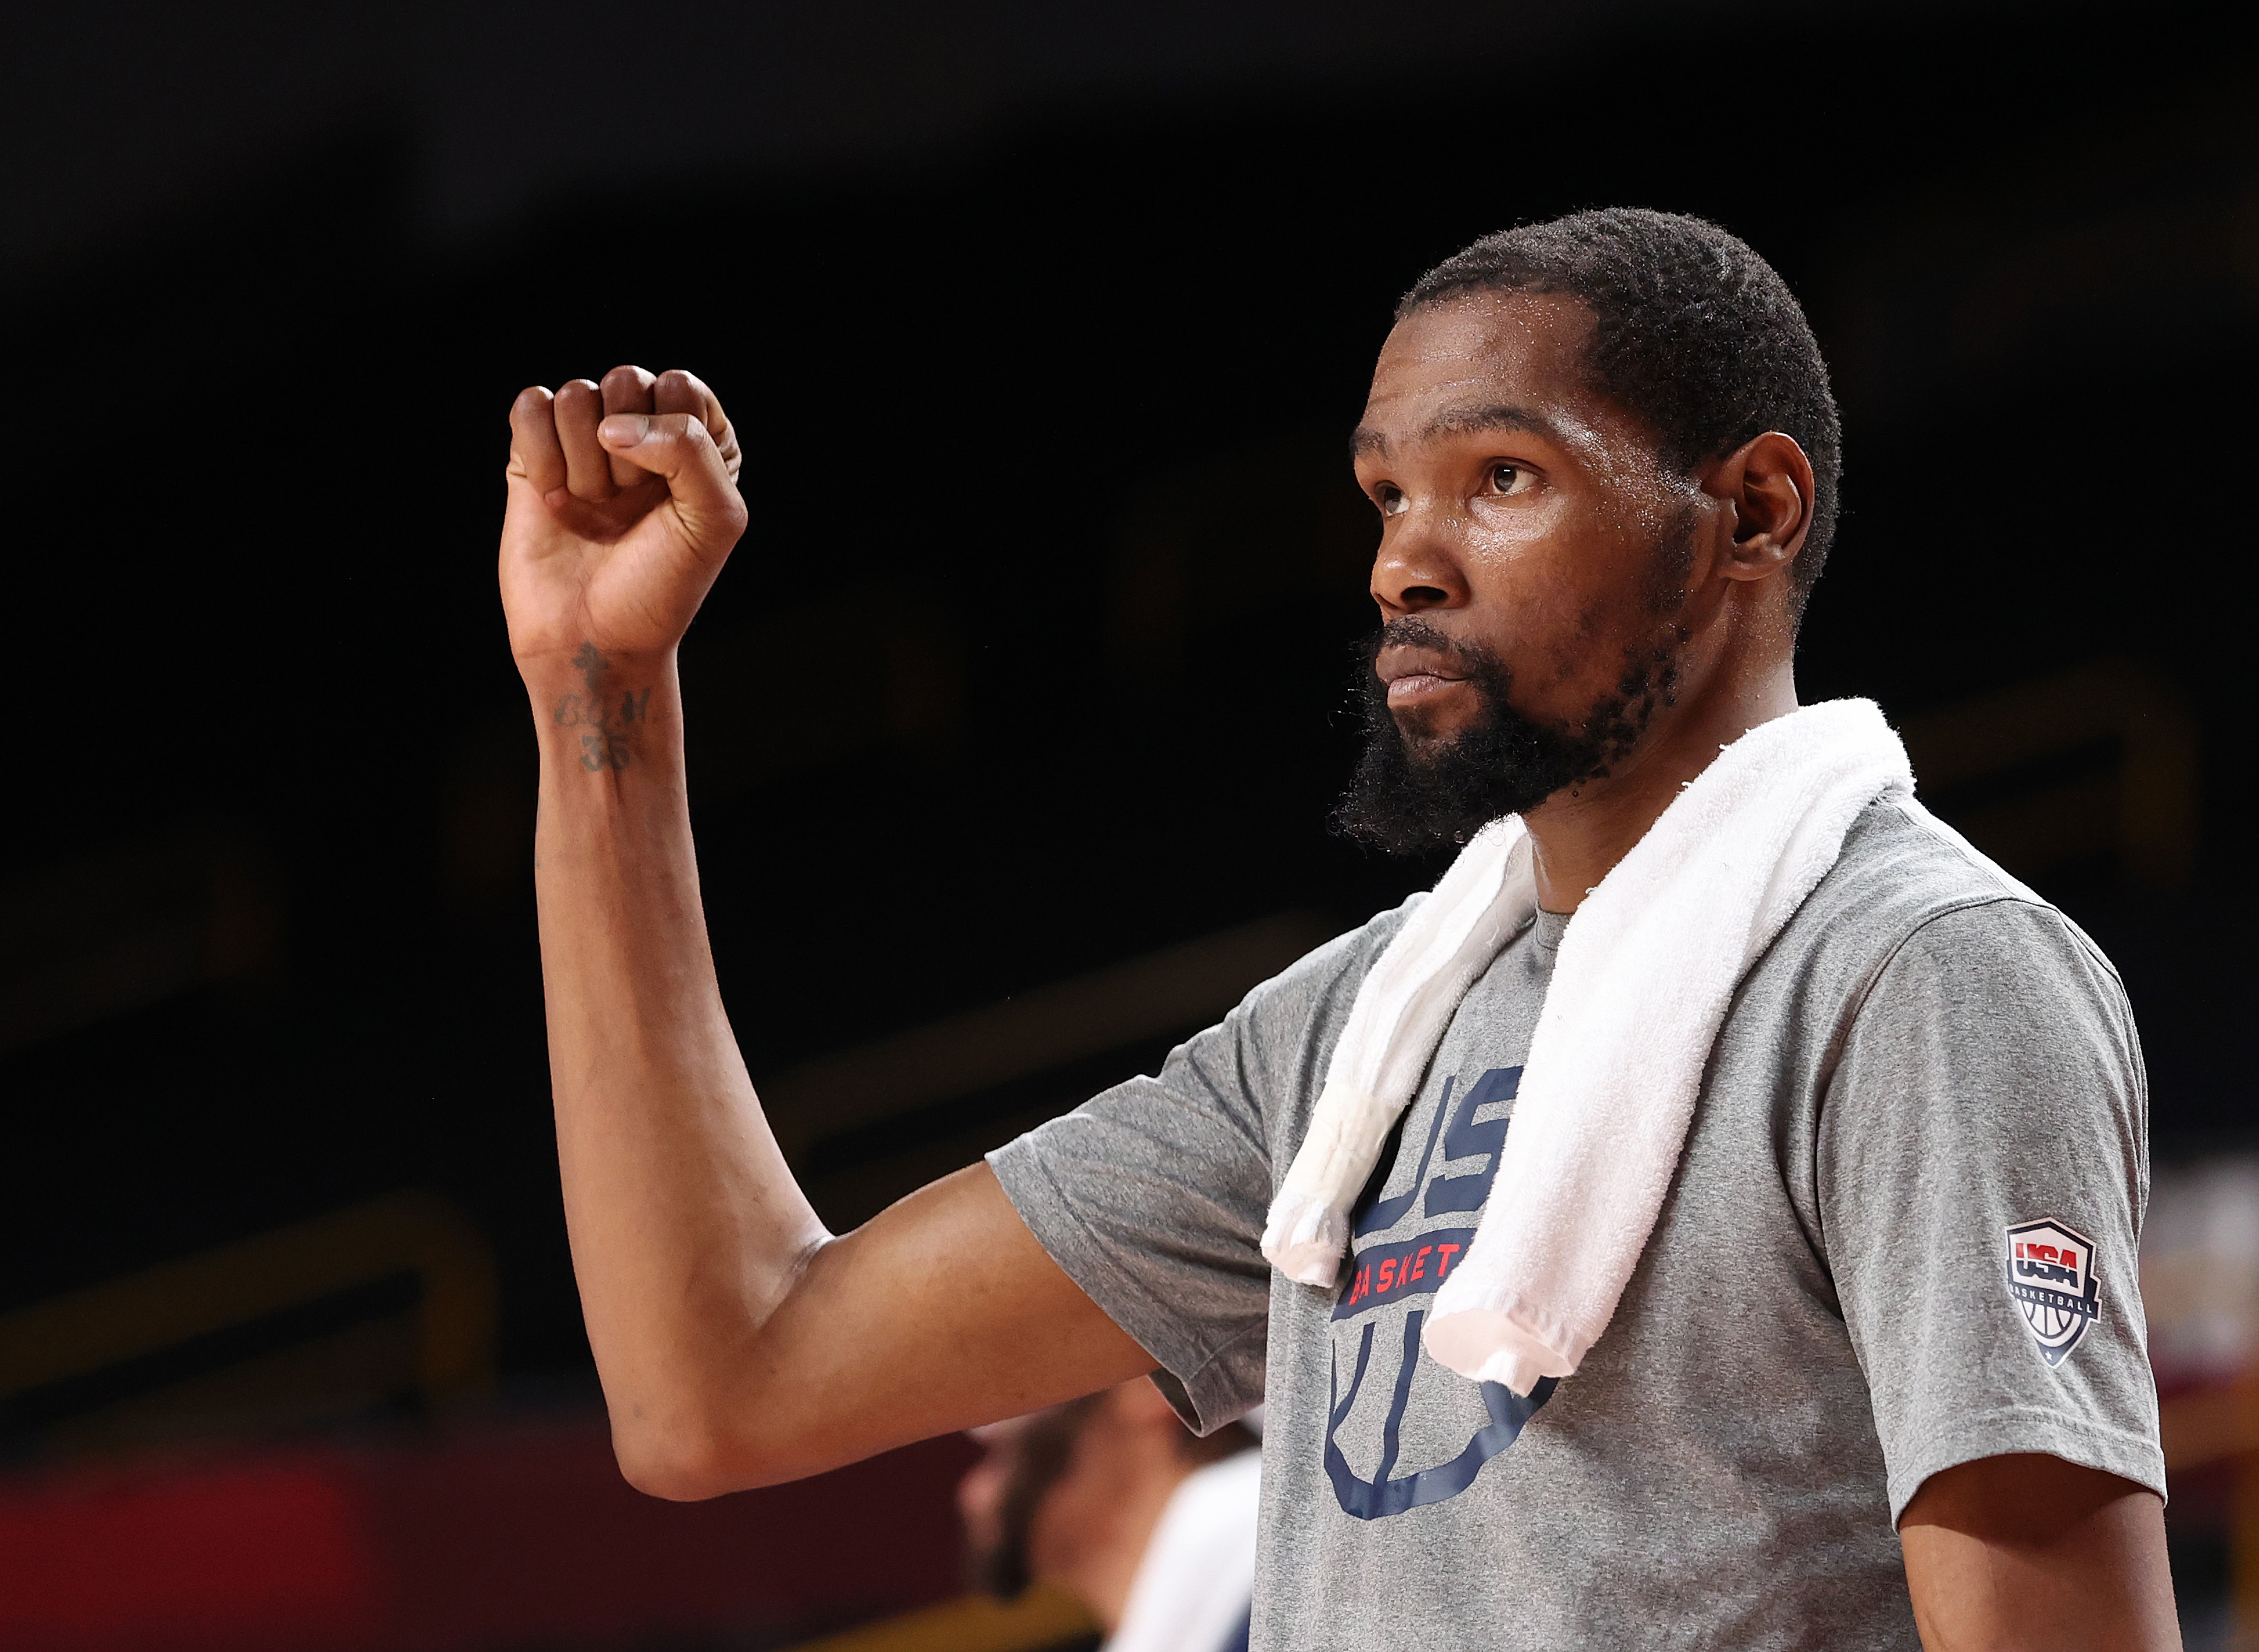 SAITAMA, JAPAN - AUGUST 05: Kevin Durant #7 of Team United States reacts from the bench during the second half of a Men's Basketball quarterfinals game between Team United States and Team Australia on day thirteen of the Tokyo 2020 Olympic Games at Saitama Super Arena on August 05, 2021 in Saitama, Japan. (Photo by Gregory Shamus/Getty Images)